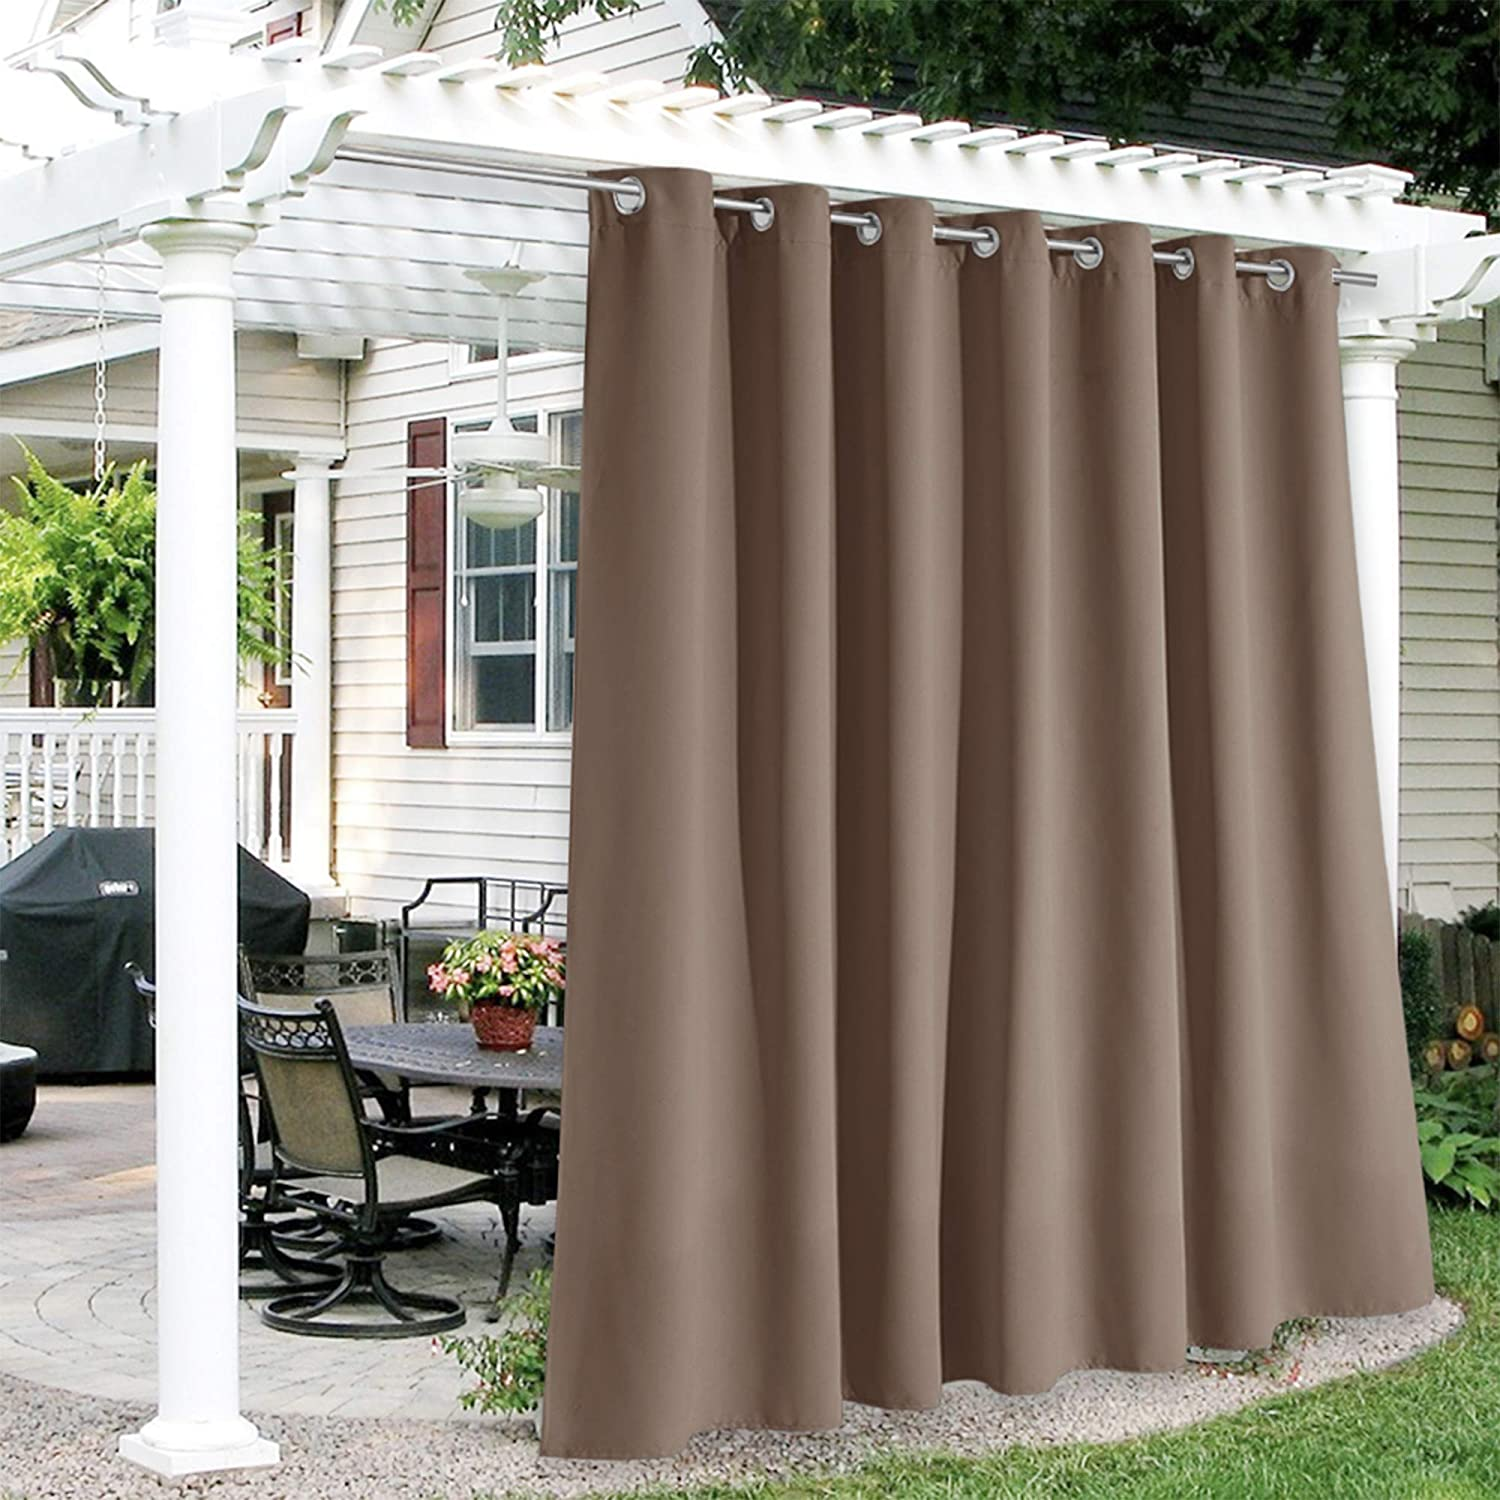 RYB HOME Outdoor Curtains Waterproof - Sun Blocking Curtains Heavy Duty Vertical Blind Grommet Shades for Garage Patio Door Window Porch Pergola, W 100 inches x L 84 inches, 1 Panel, Chocolate